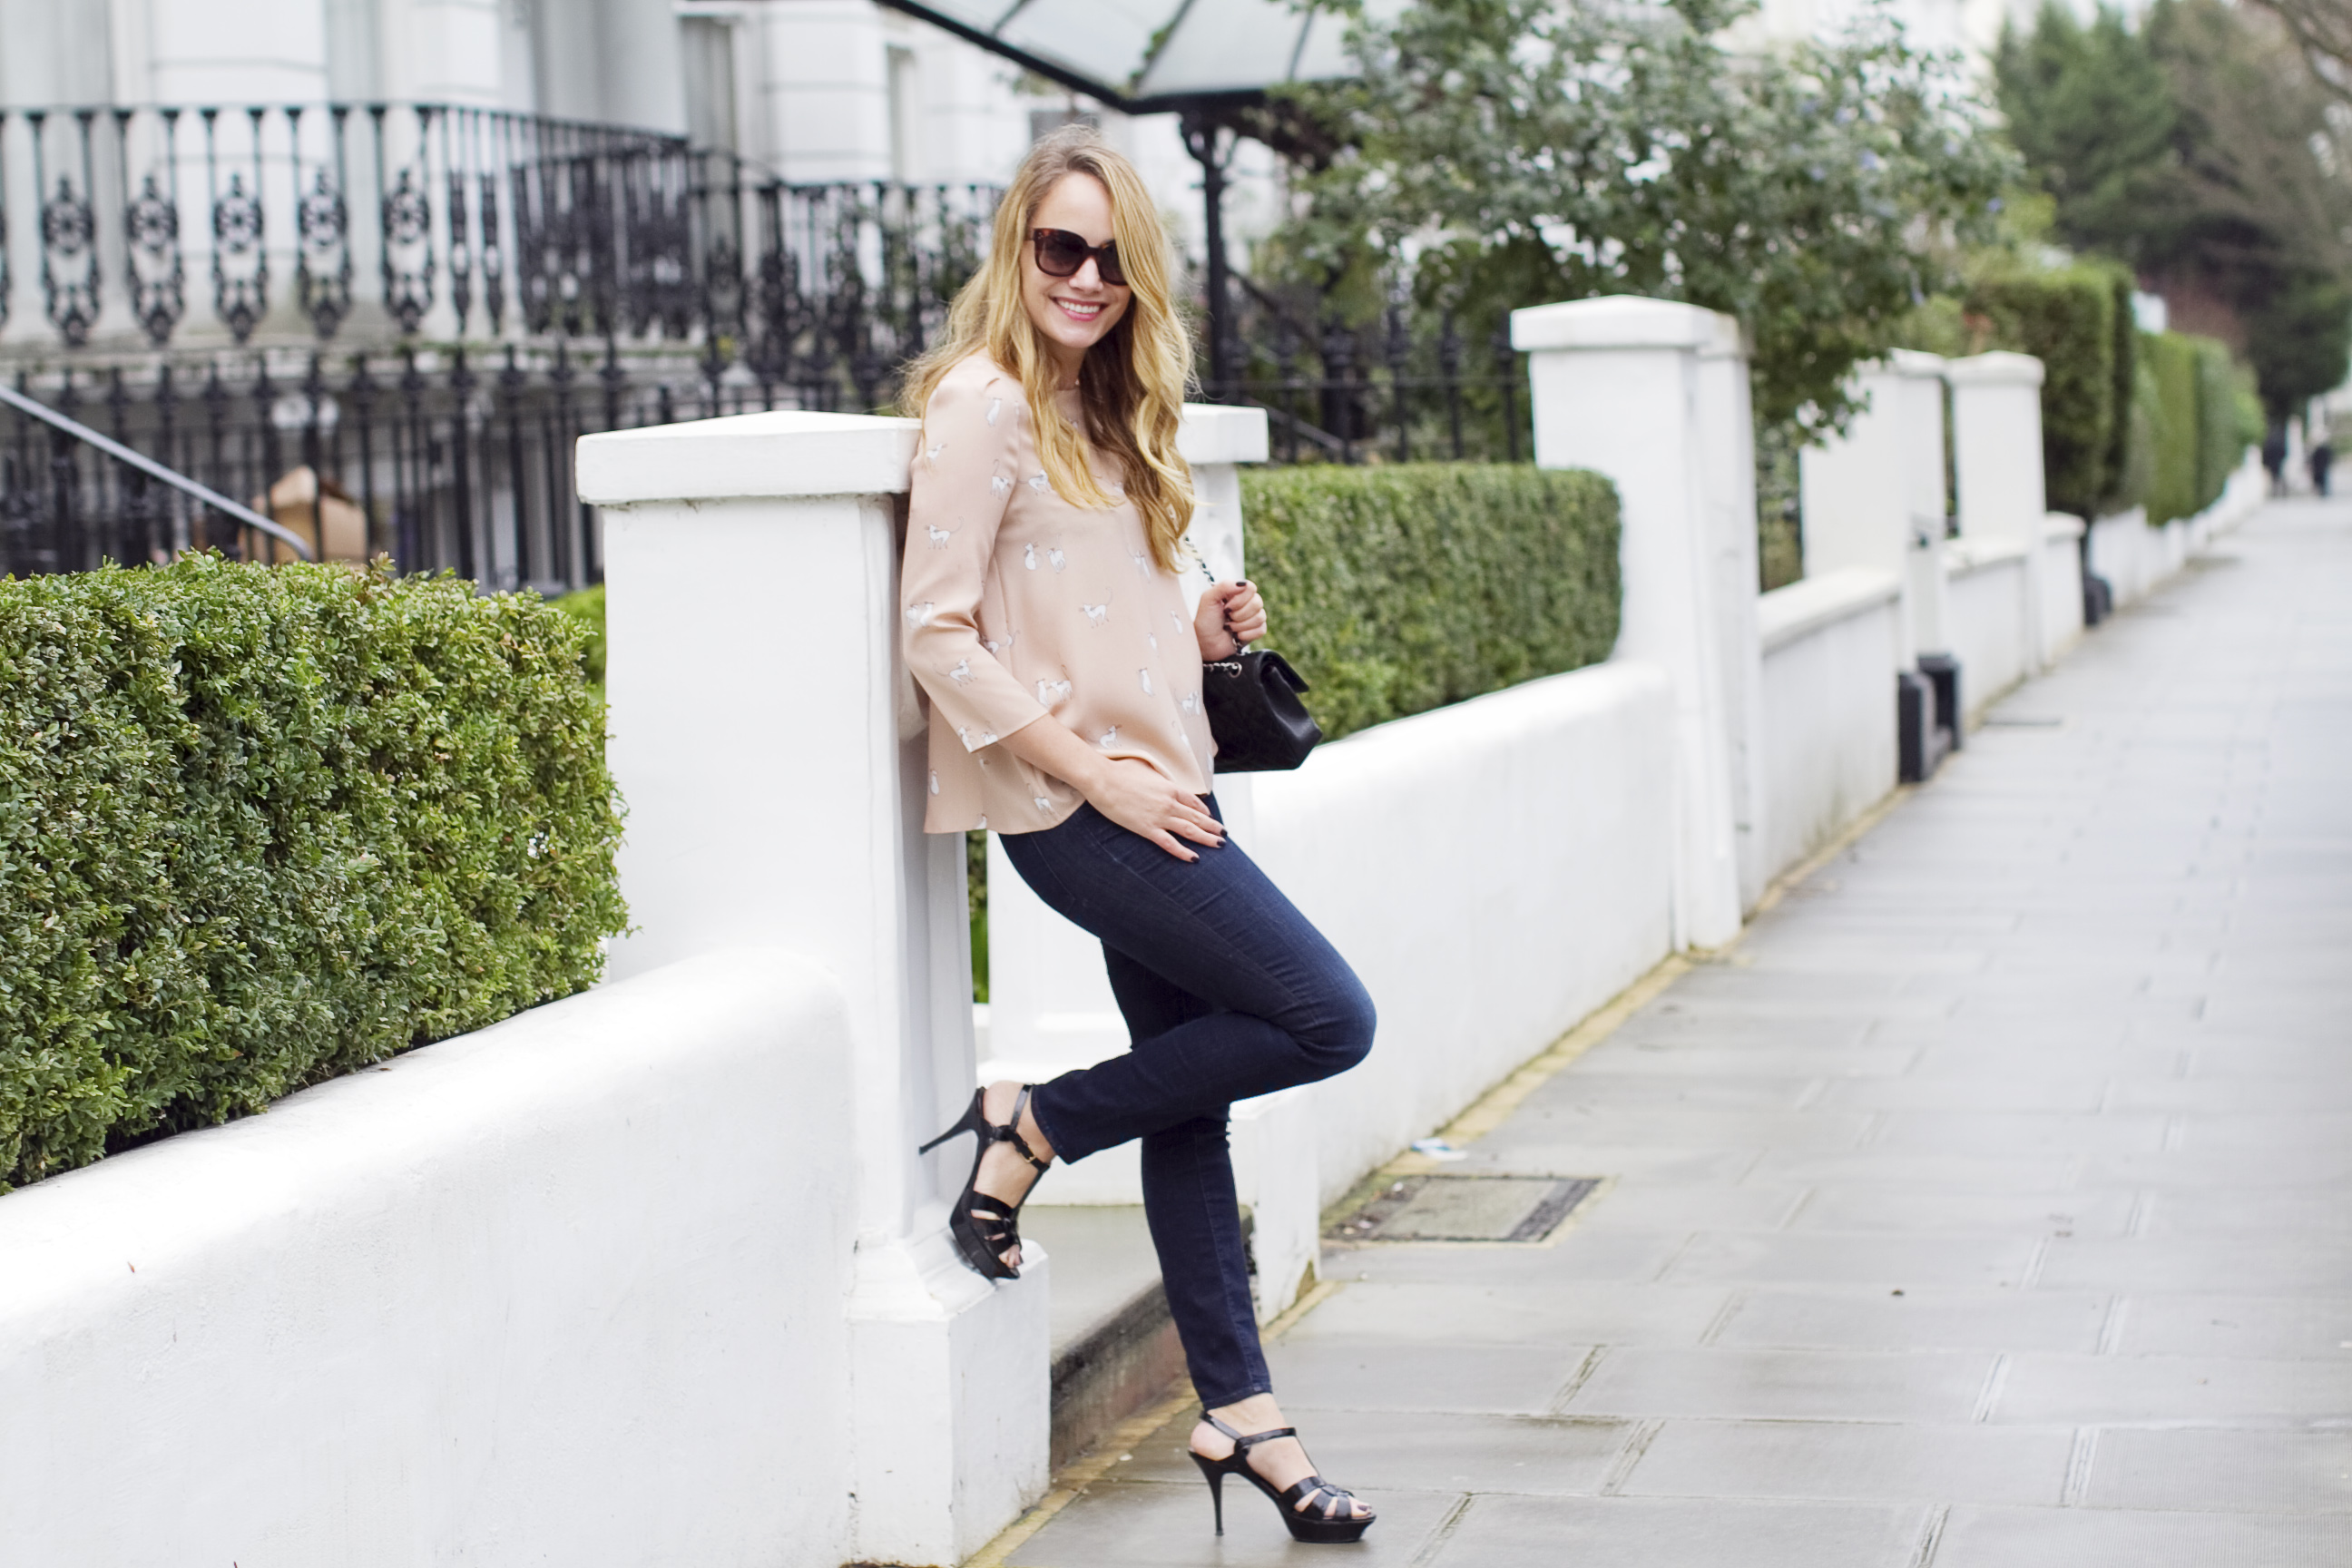 Claudie Pierlot Bampolinebis Top, DL1961 Jeans, Chanel 2.55 Bag, Saint Laurent Tribute Sandals - Grace Atwood, The Stripe (taken at The Laslett Hotel in Notting Hill, London)